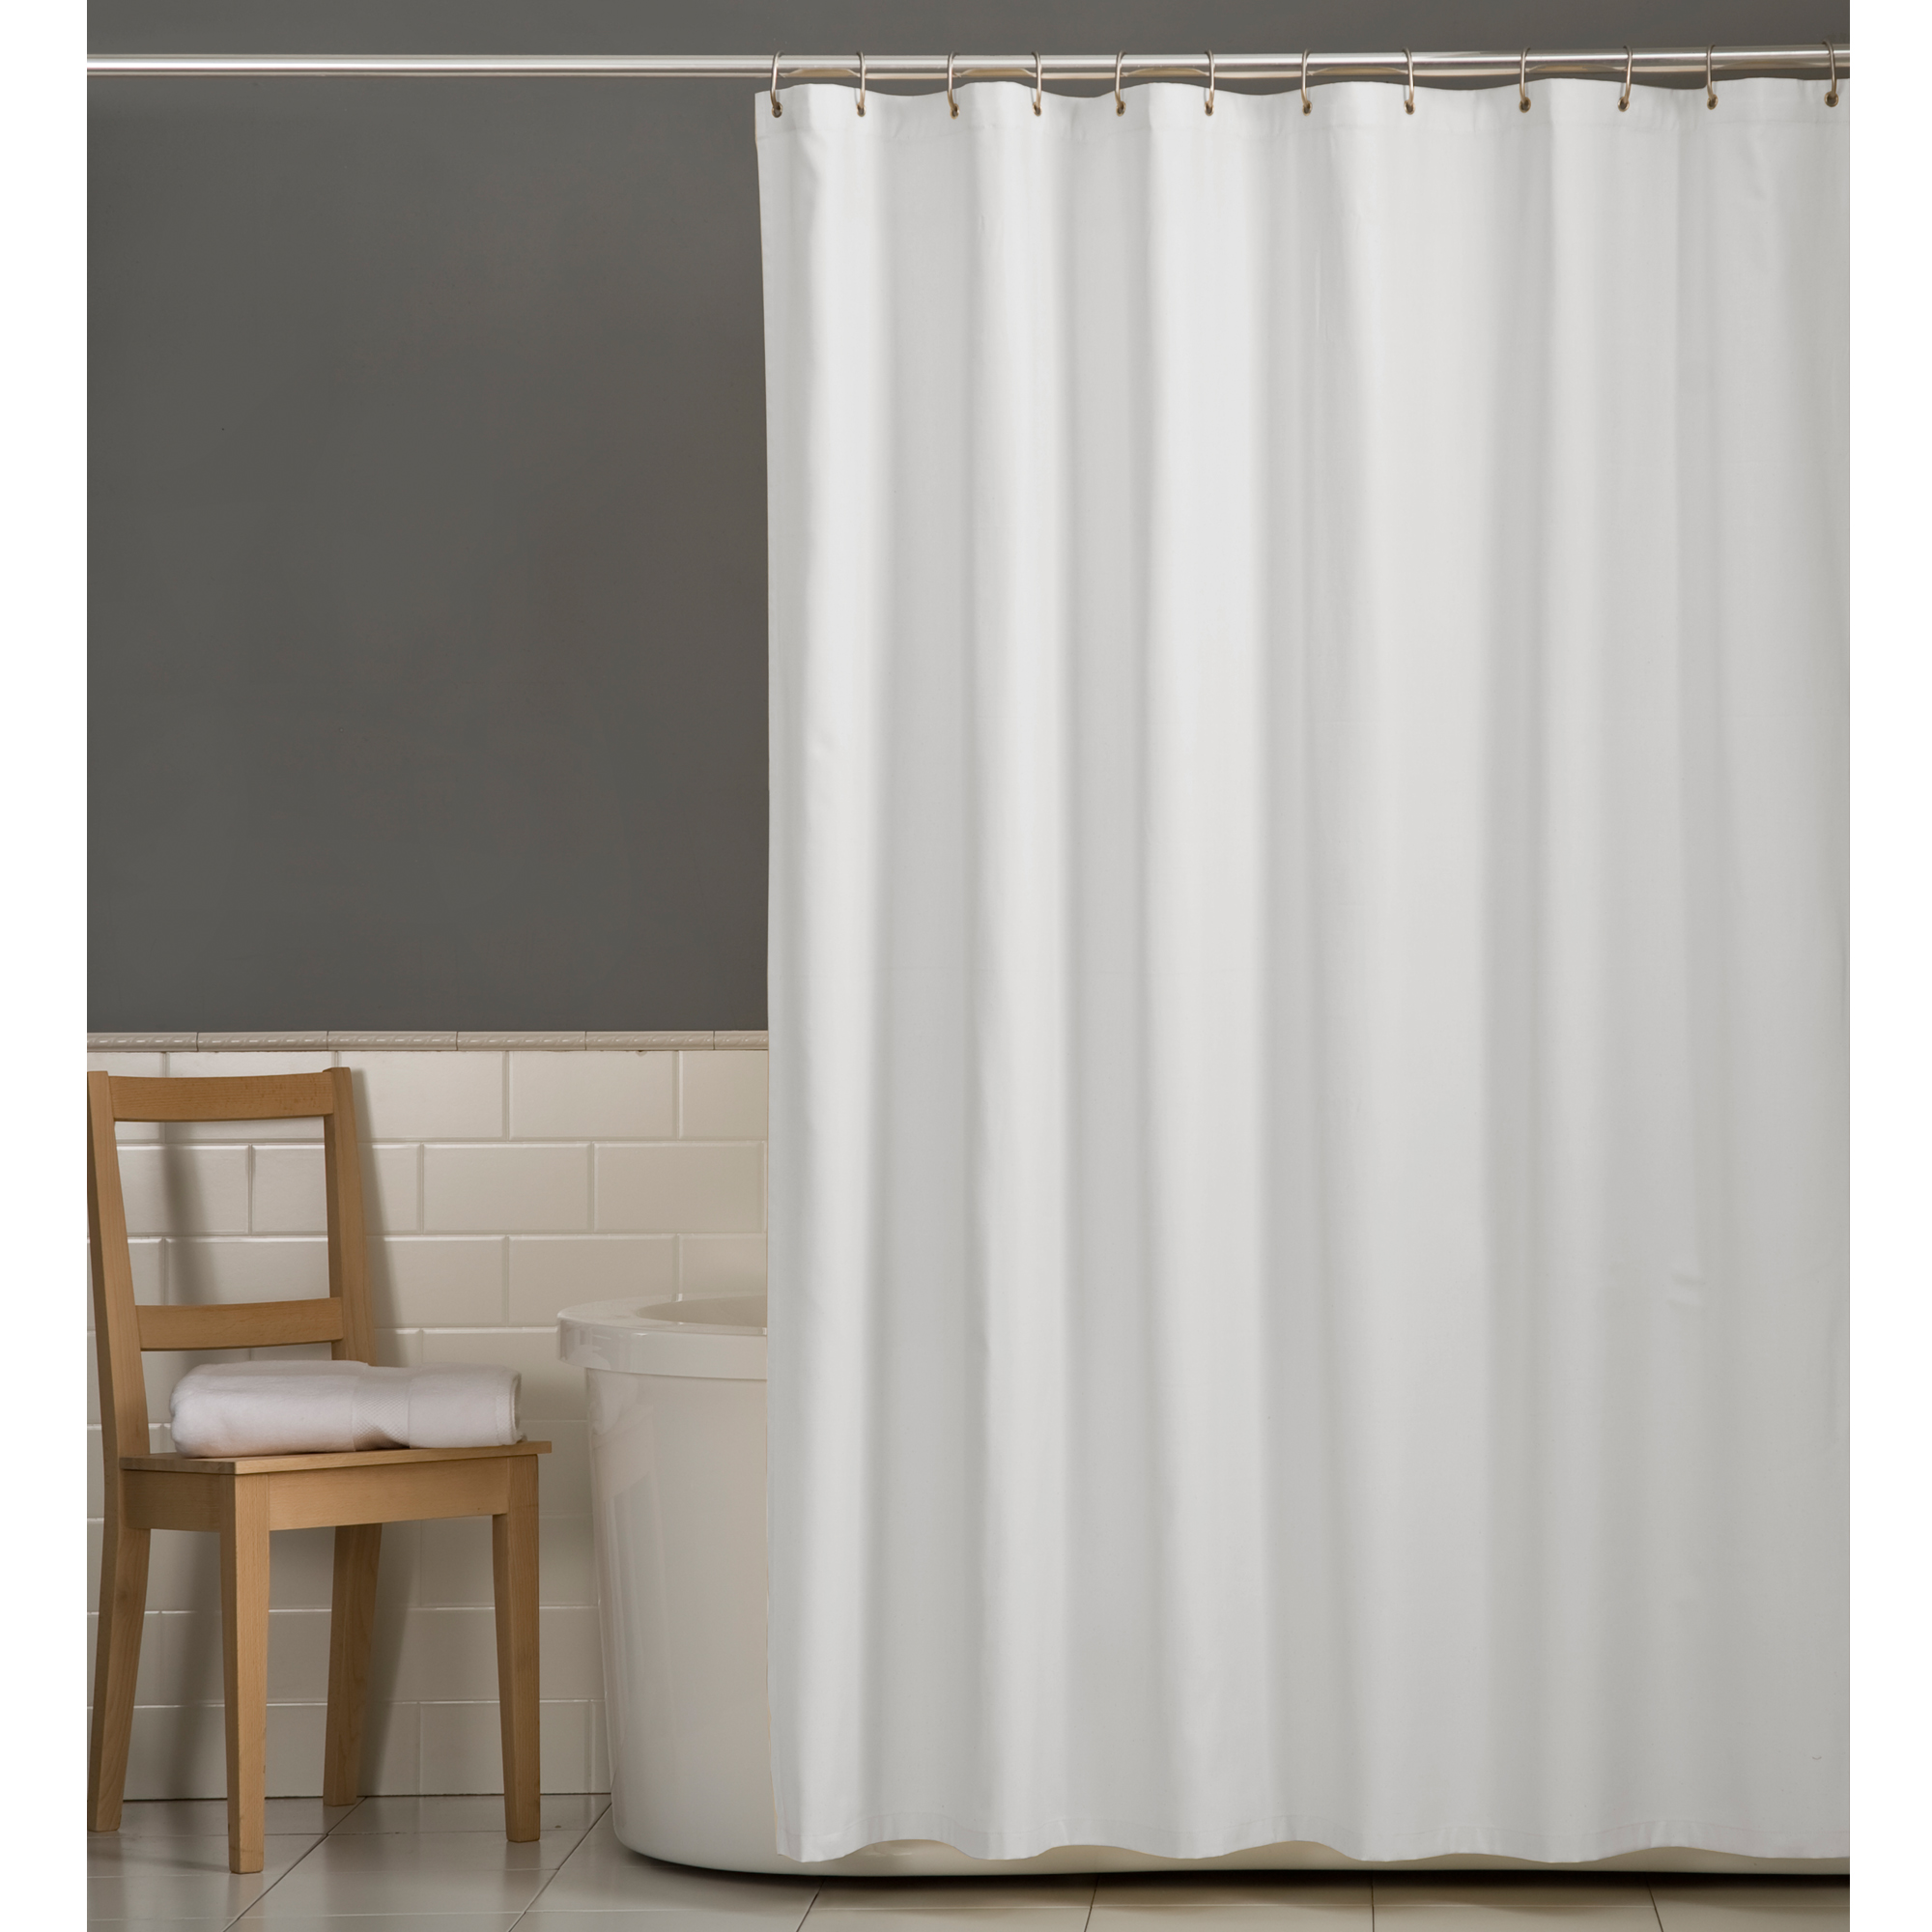 zenna home microfiber water repellent fabric shower curtain or liner